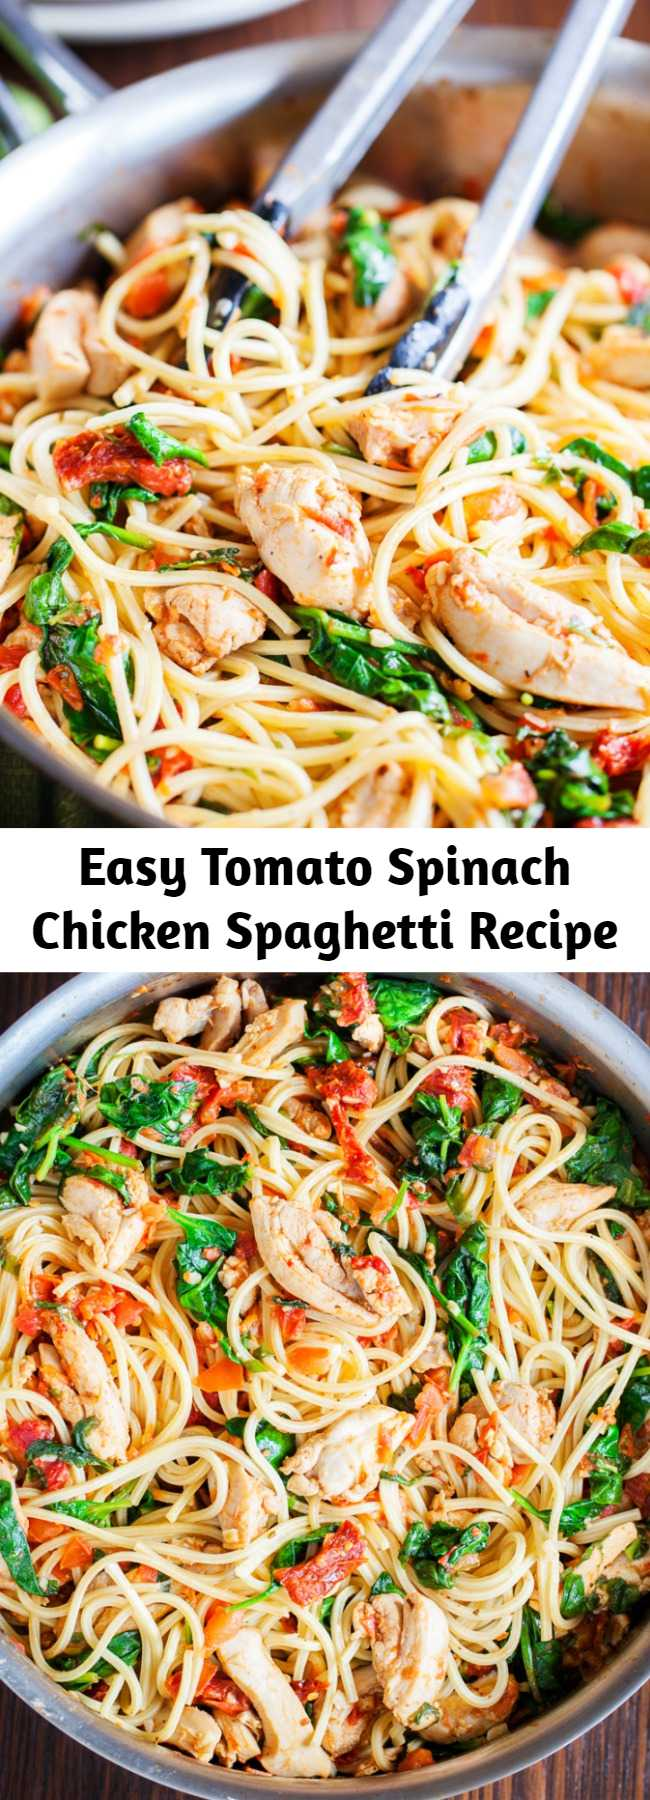 Easy Tomato Spinach Chicken Spaghetti Recipe - One bite of this Tomato Spinach Chicken Spaghetti and you will never buy jarred tomato sauce ever again. Spaghetti is tossed in a fresh and flavorful sauce with pieces of juicy chicken. Fresh spinach adds a boost of nutrients, but feel free to use other vegetables to customize to your family's liking.